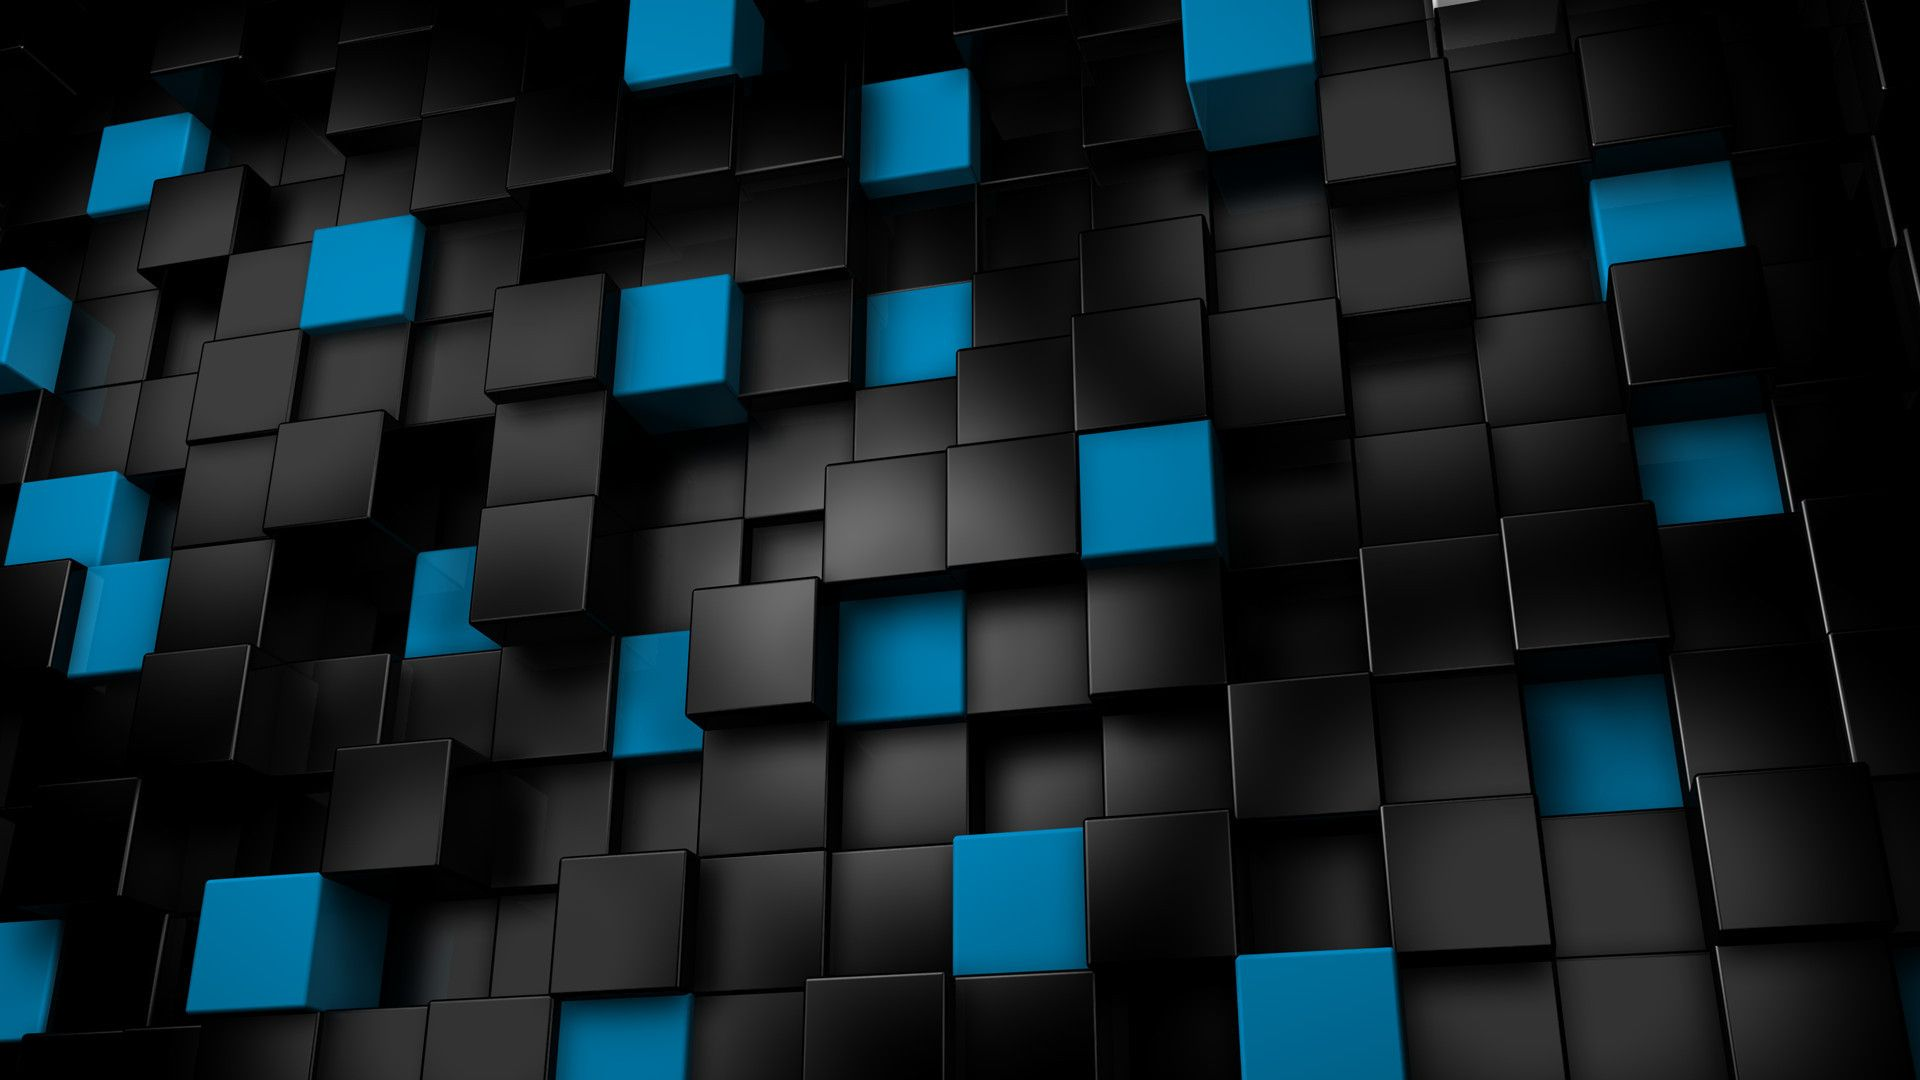 3d abstract wallpaper | wallpaper | wallpaper, hd wallpaper